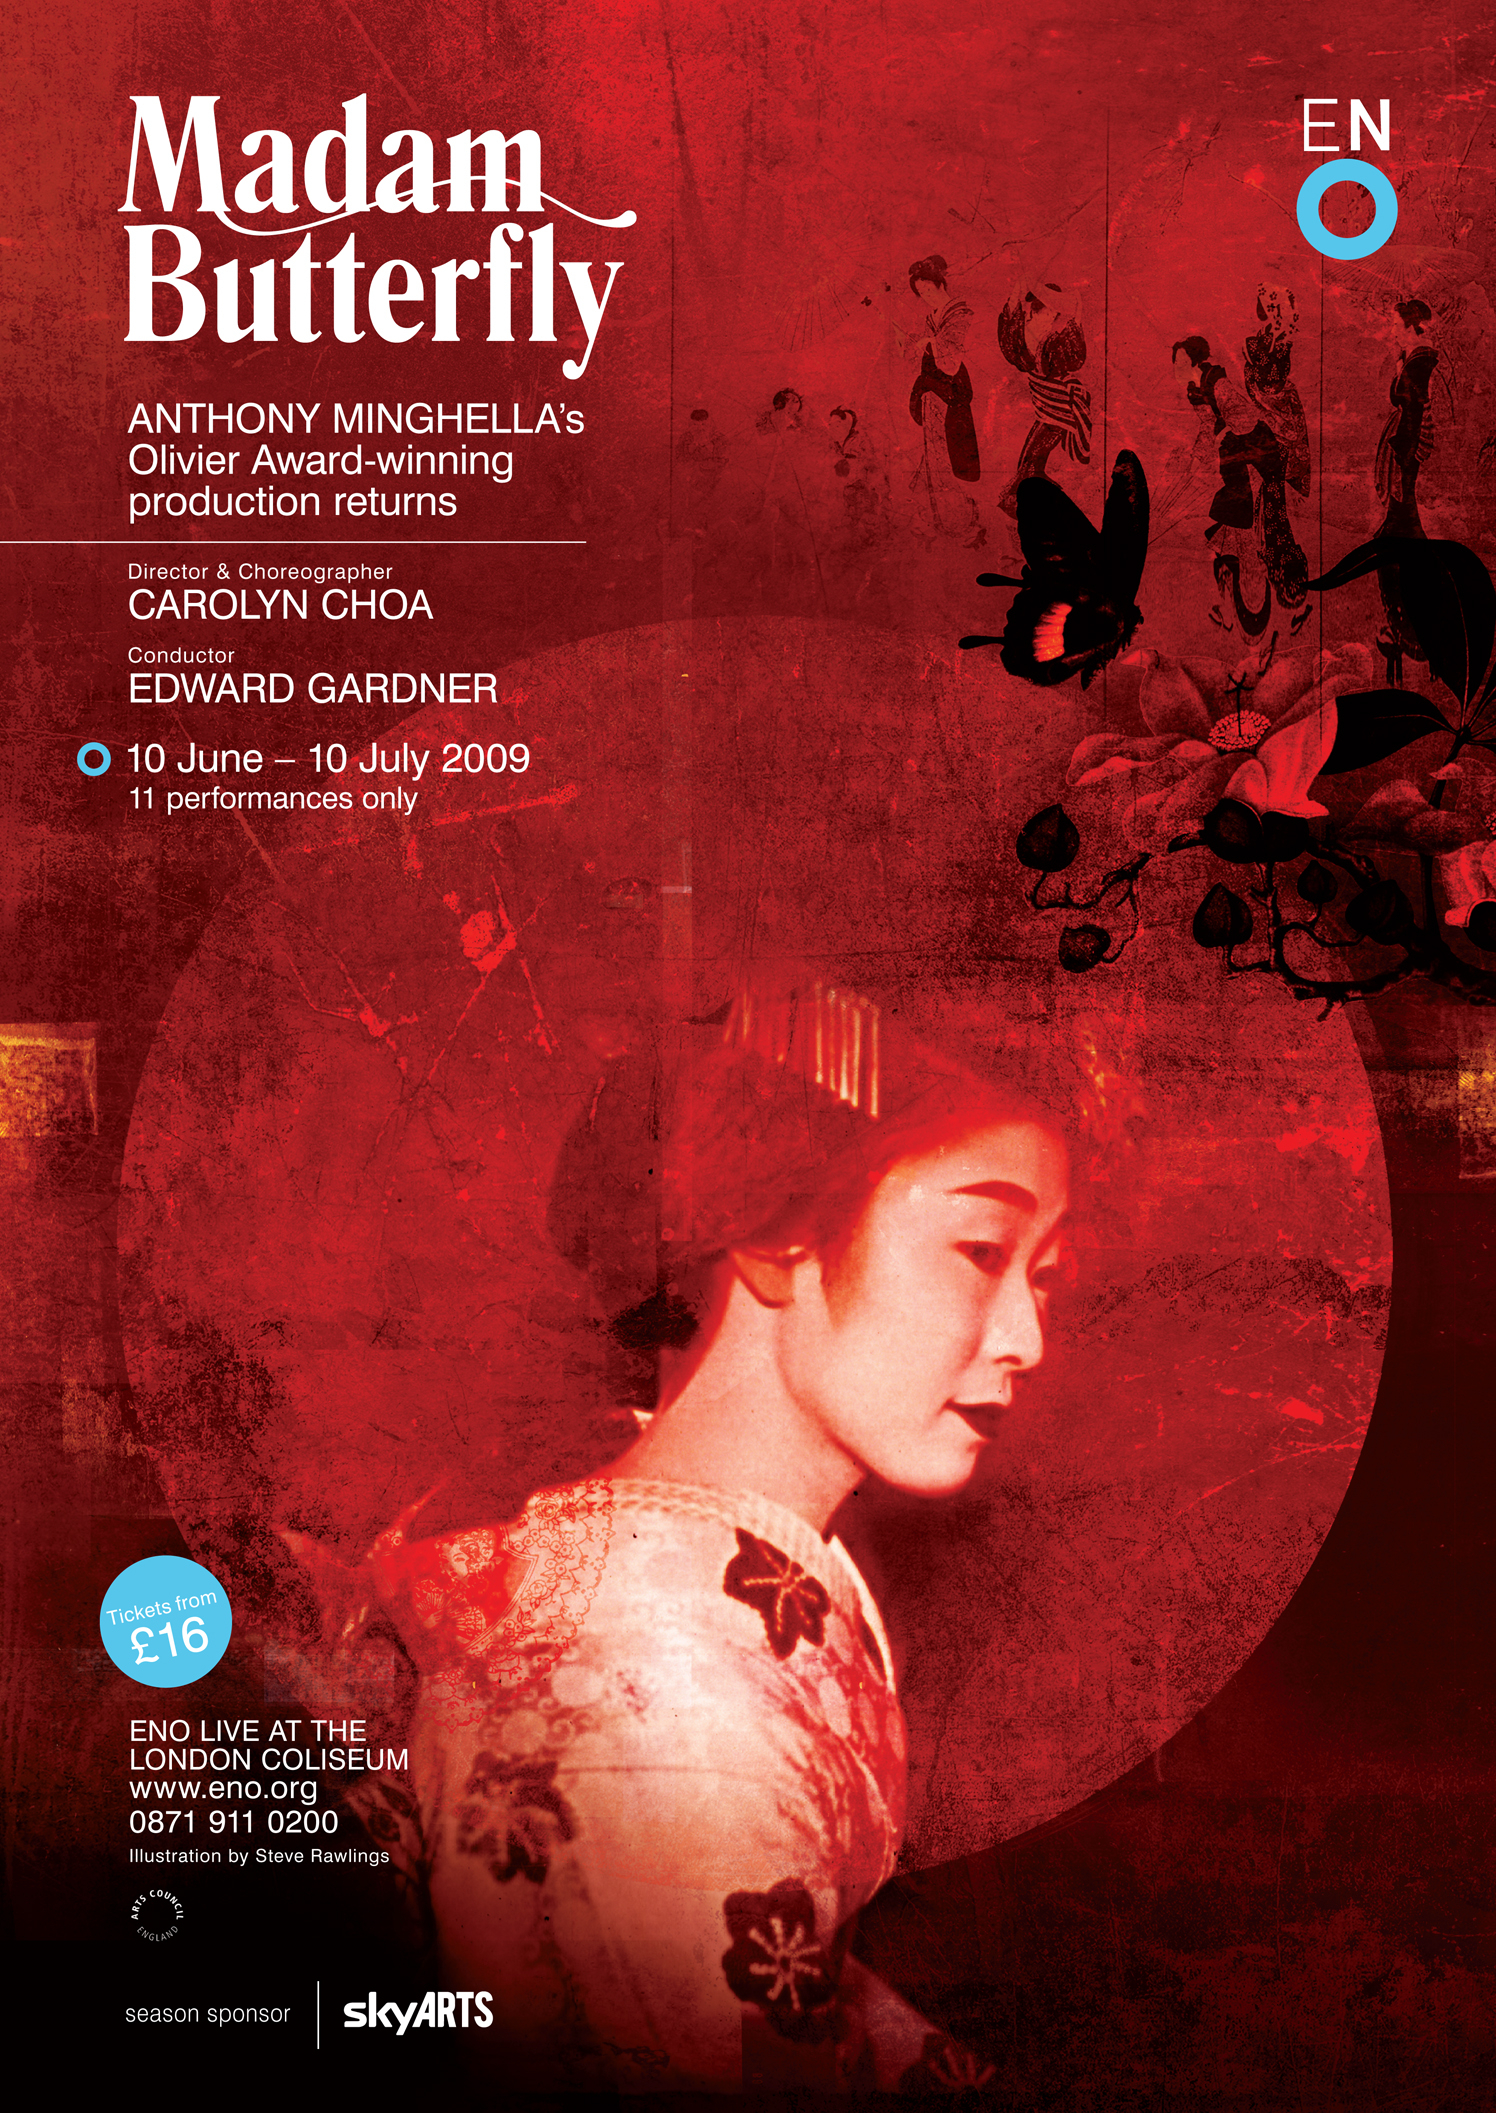 ENO Madam Butterfly